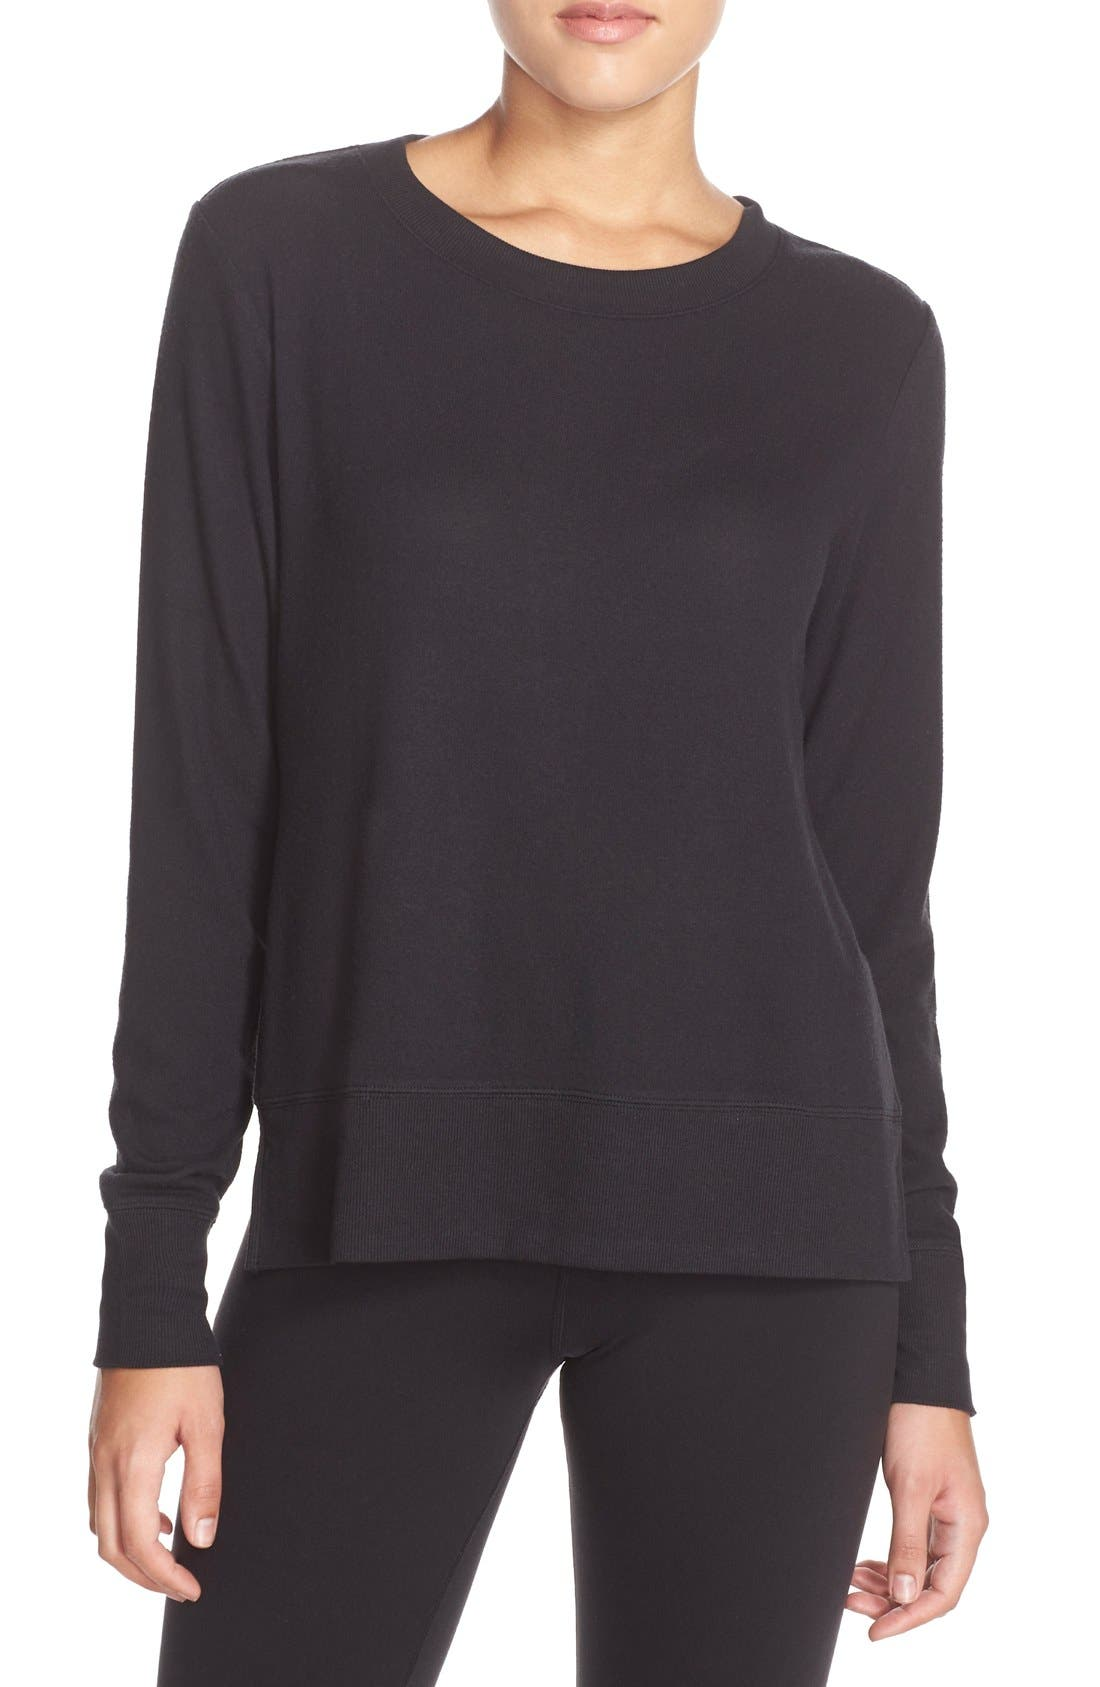 ALO 'Glimpse' Long Sleeve Top, Main, color, BLACK